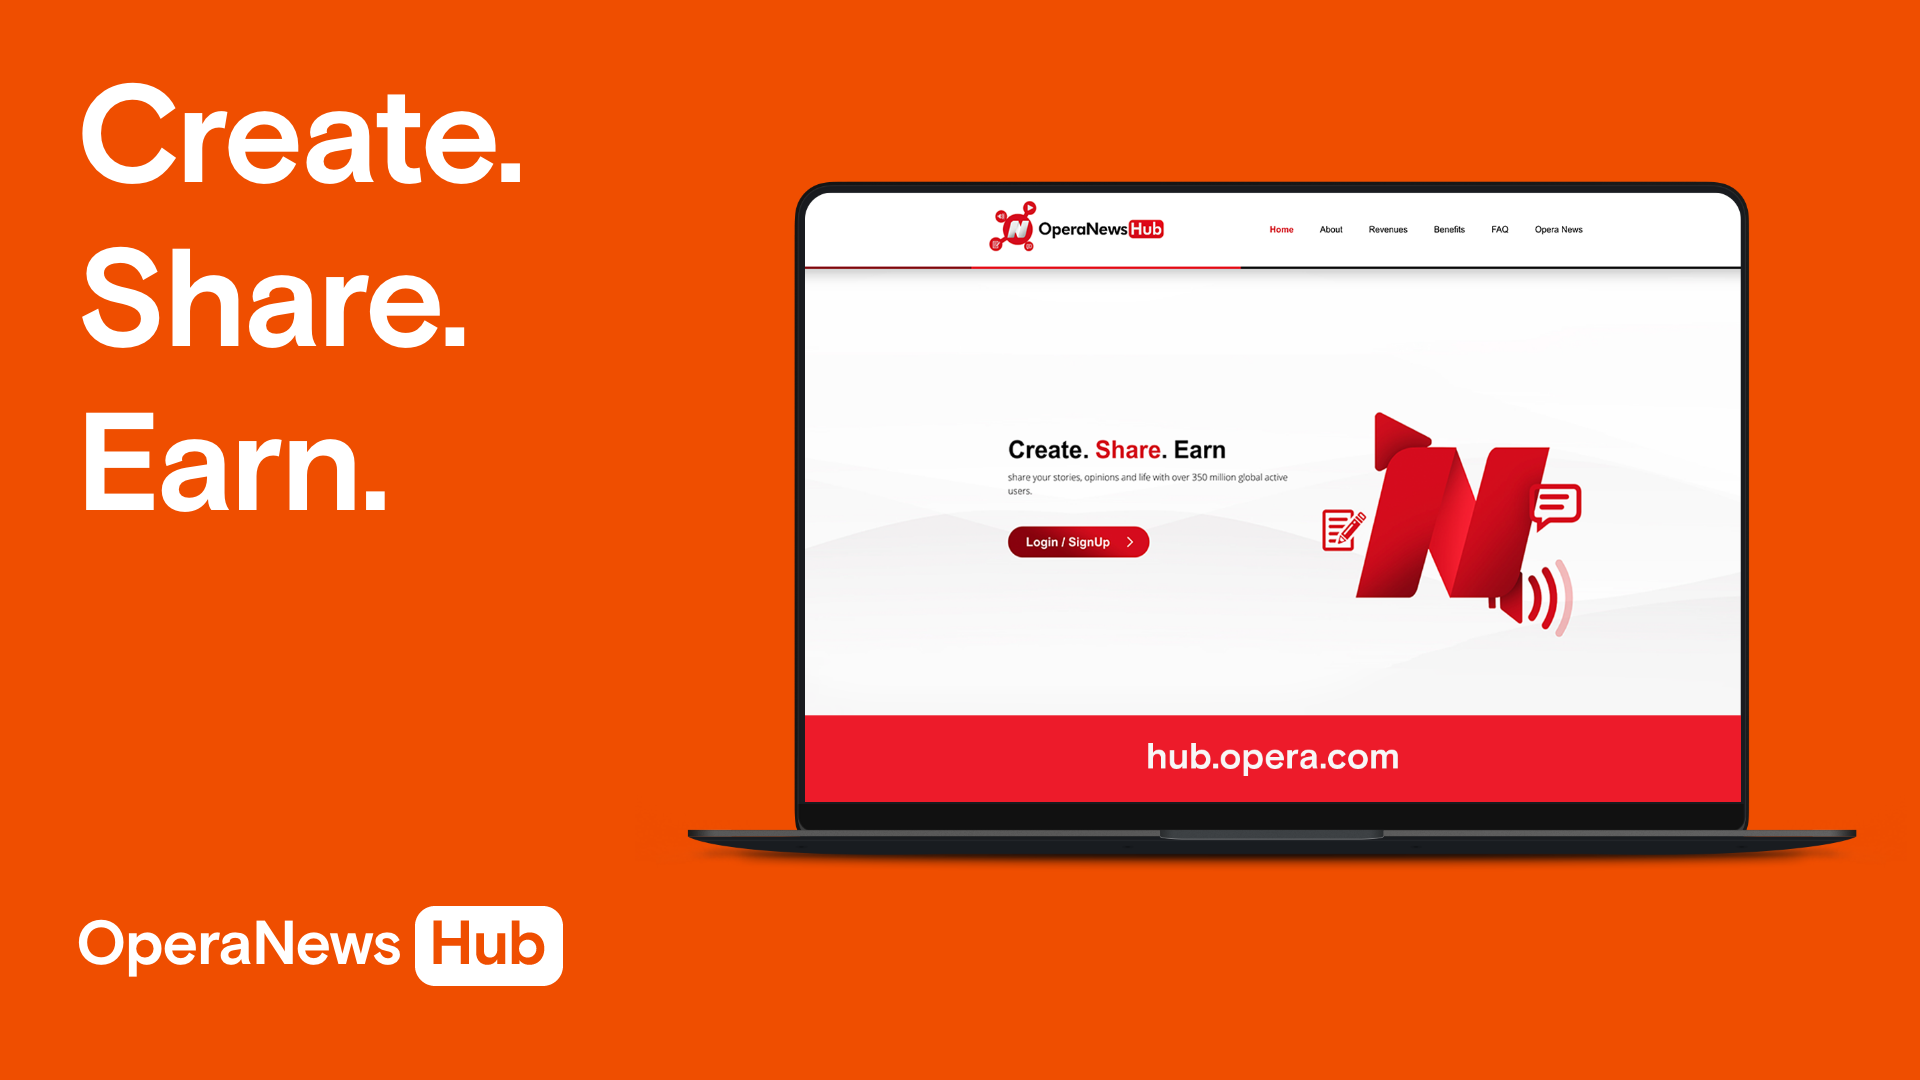 Opera launches Opera News Hub, a new online media platform where content creators can reach over 350 million people